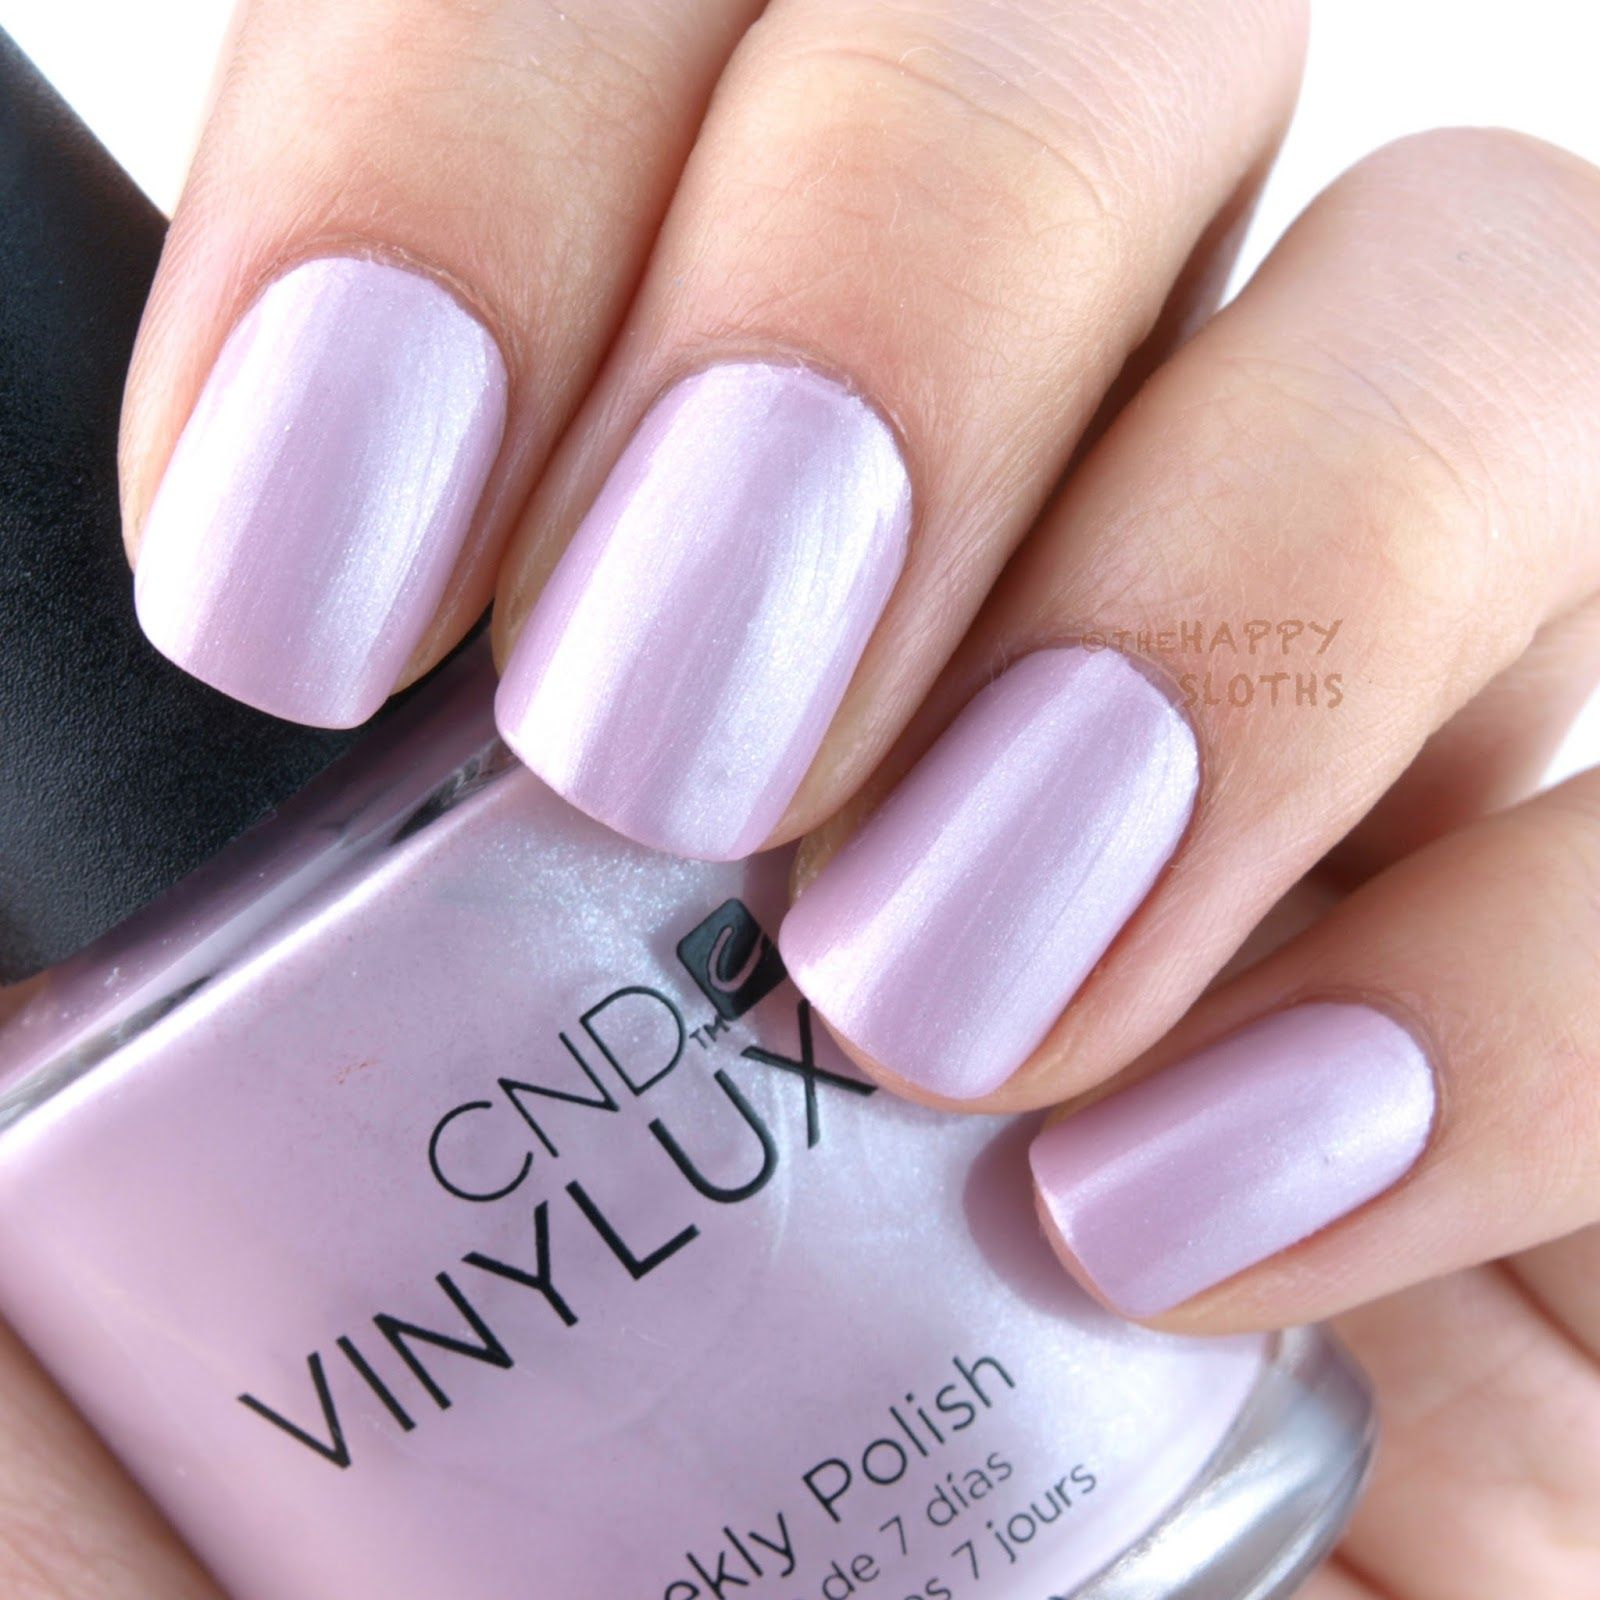 The Happy Sloths: CND Summer 2016 Flirtation Collection